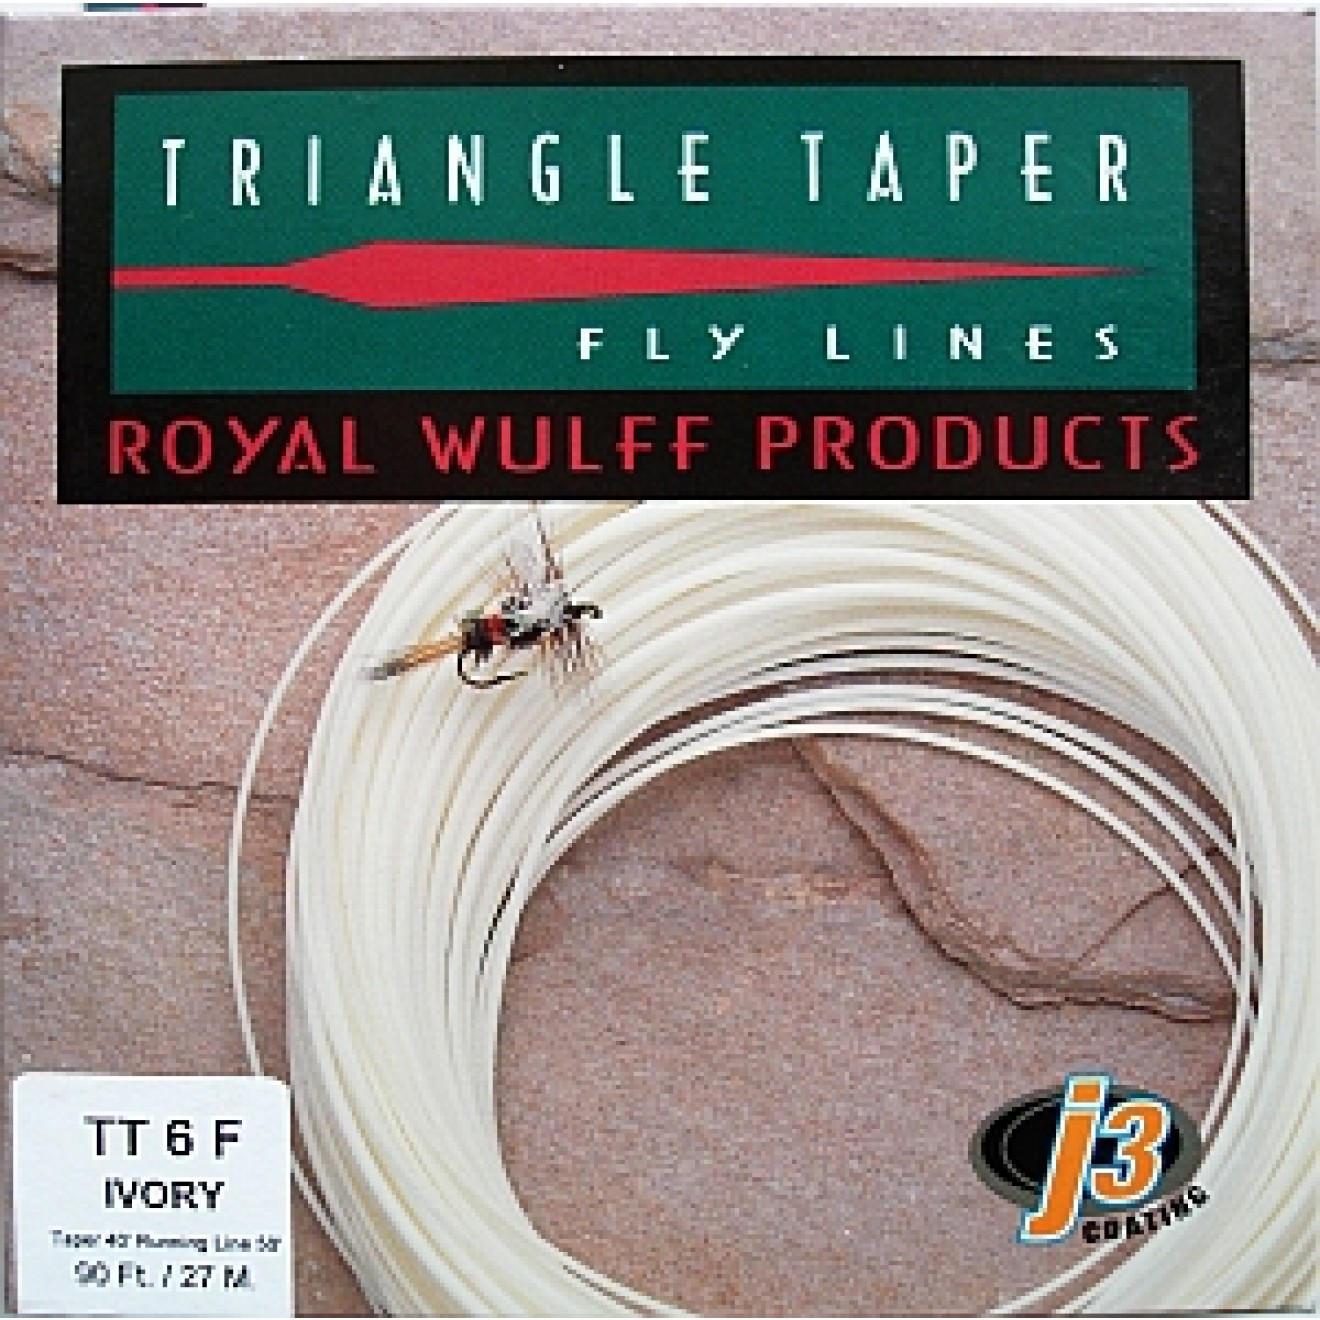 Royal Wulff Triangle Taper TTF Classic